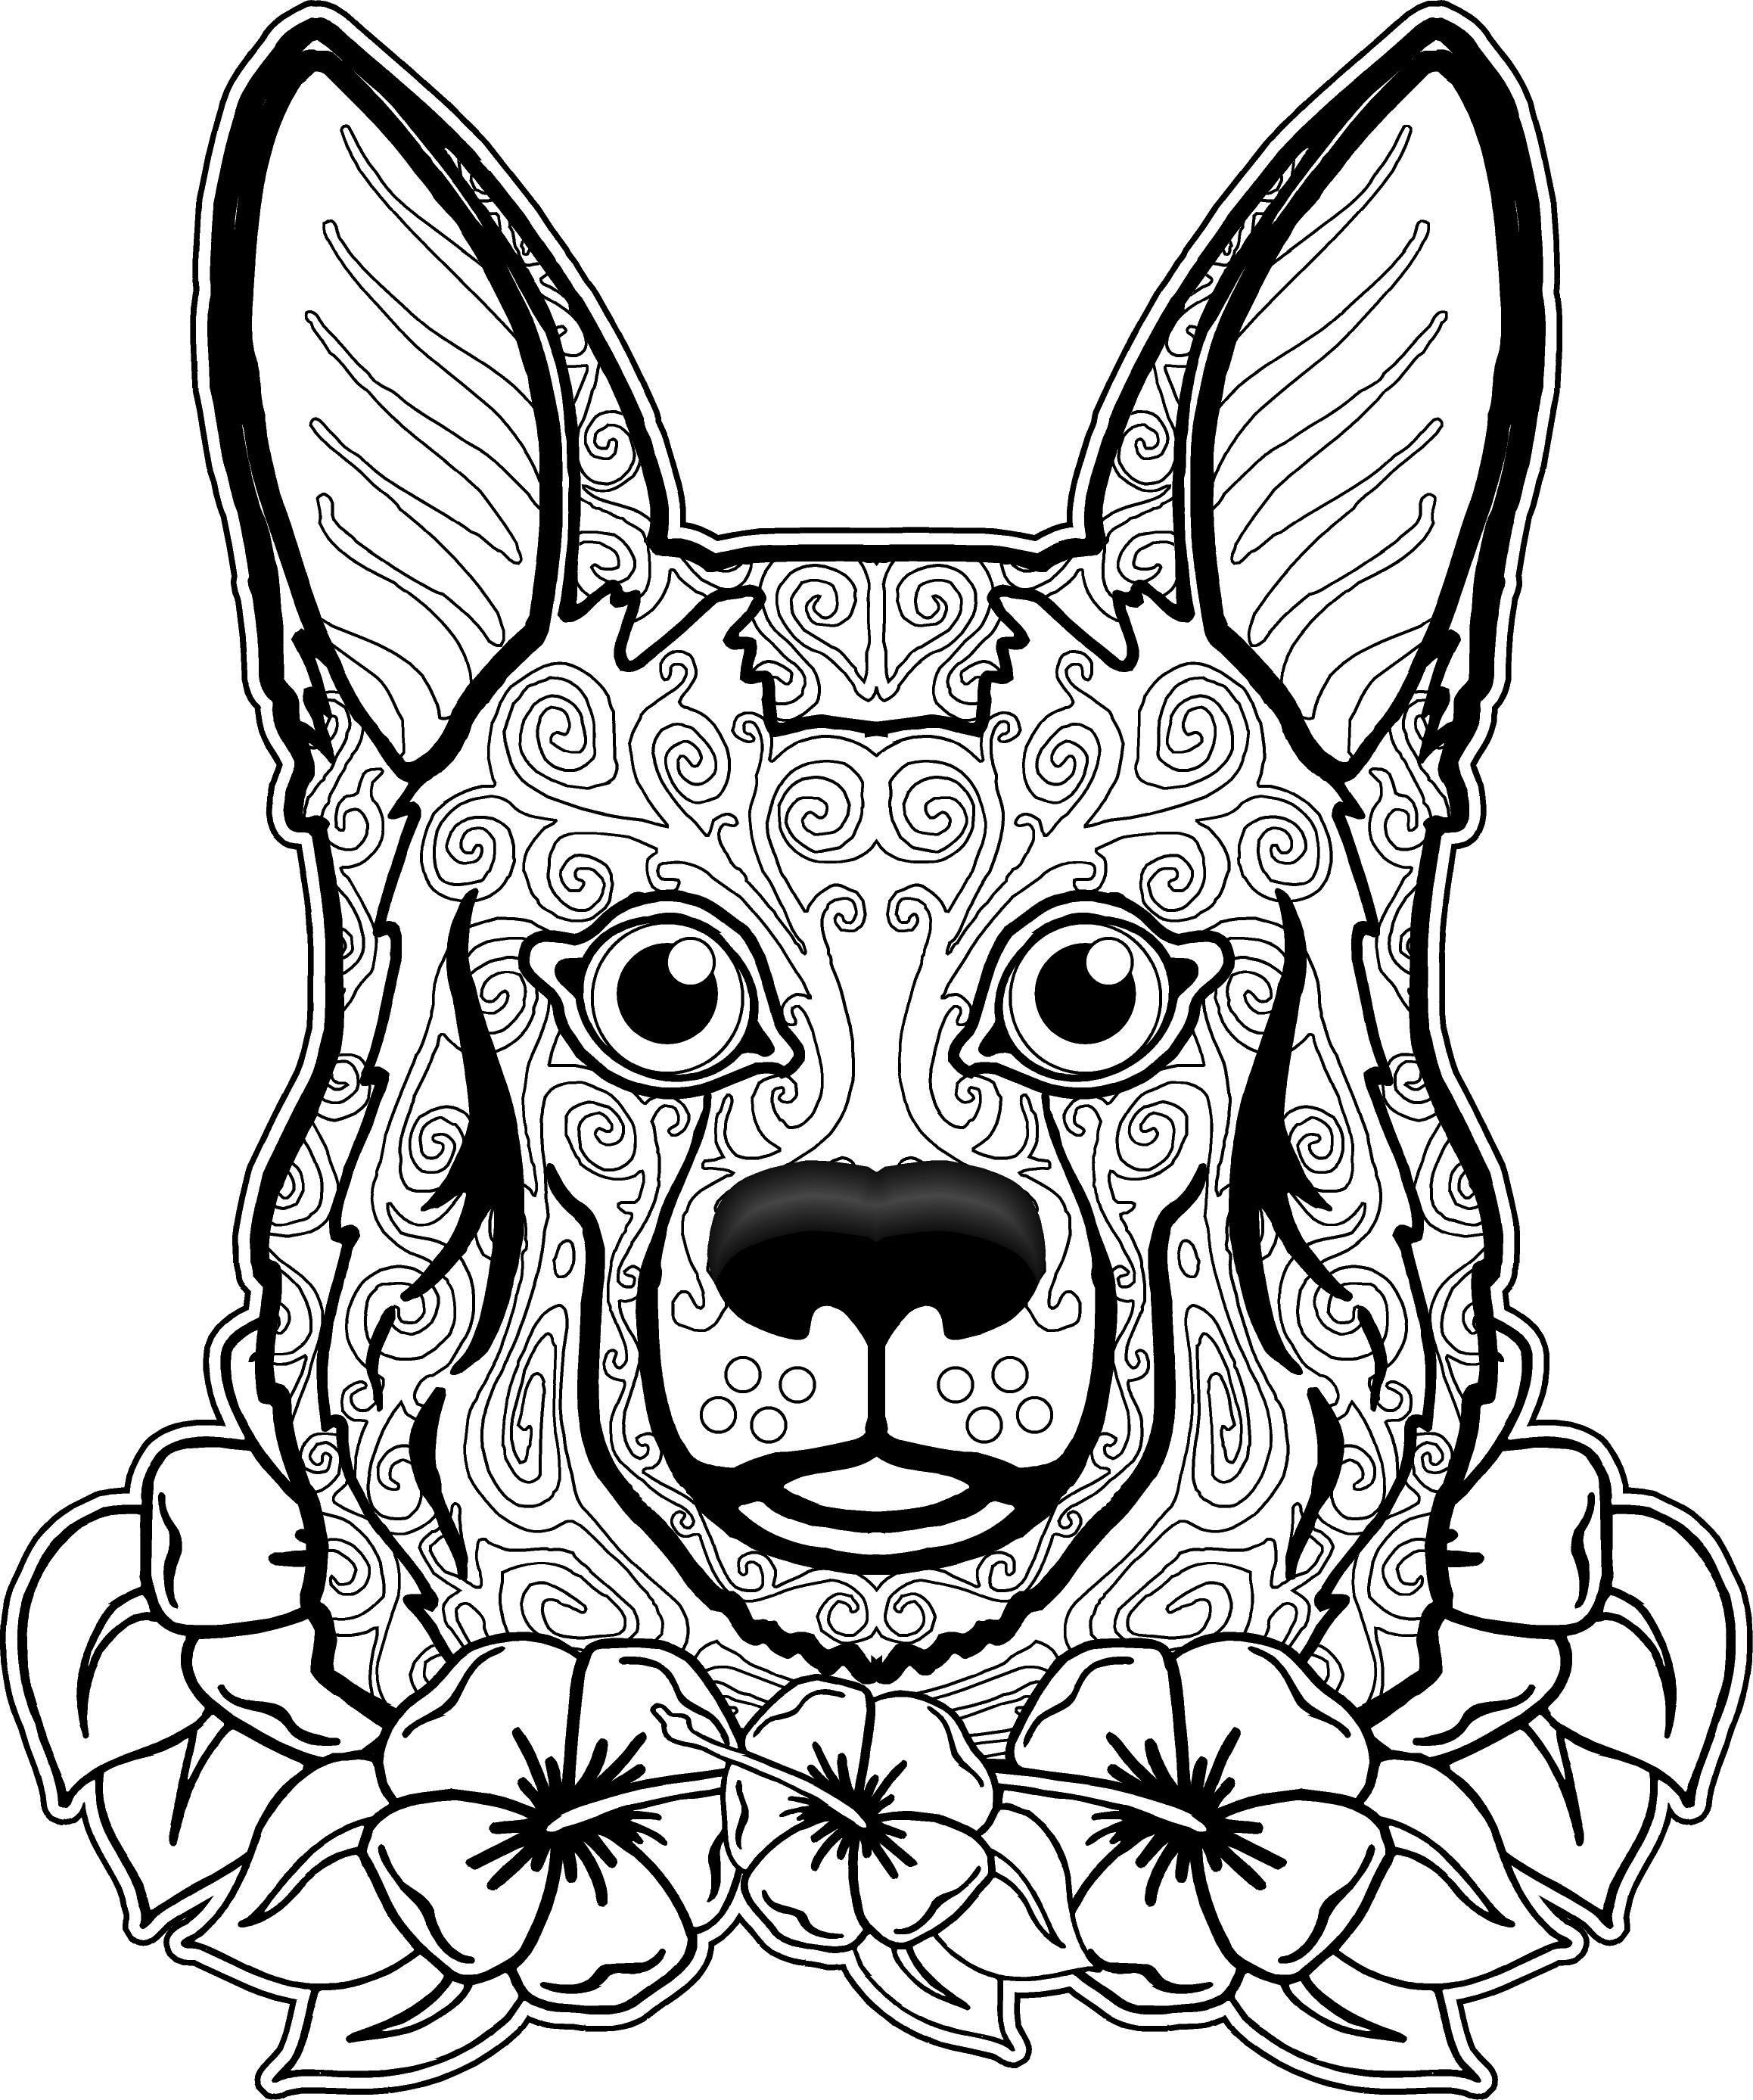 free printable dog coloring pages for adults | Pin by Robbie Thomas on coloring pages | Dog coloring page ...